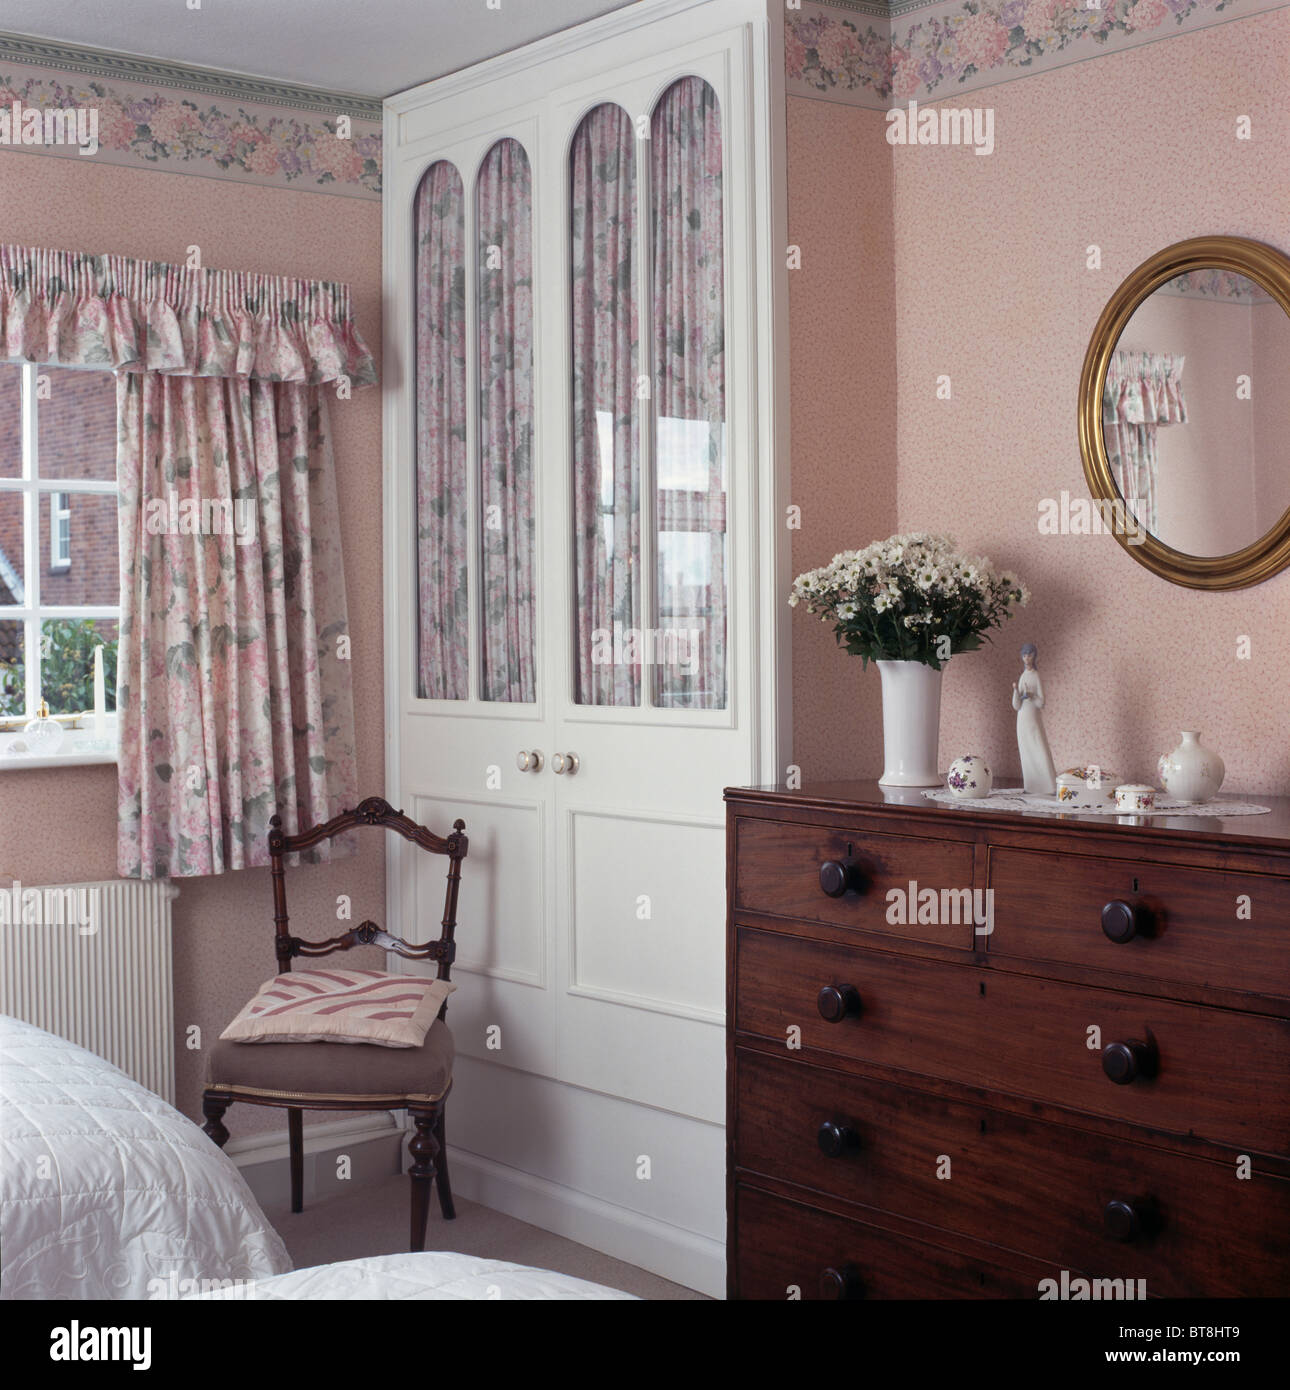 Fitted wardrobe with curtains behind glazed doors in cottage bedroom with pink wallpaper and curtains & Fitted wardrobe with curtains behind glazed doors in cottage bedroom ...